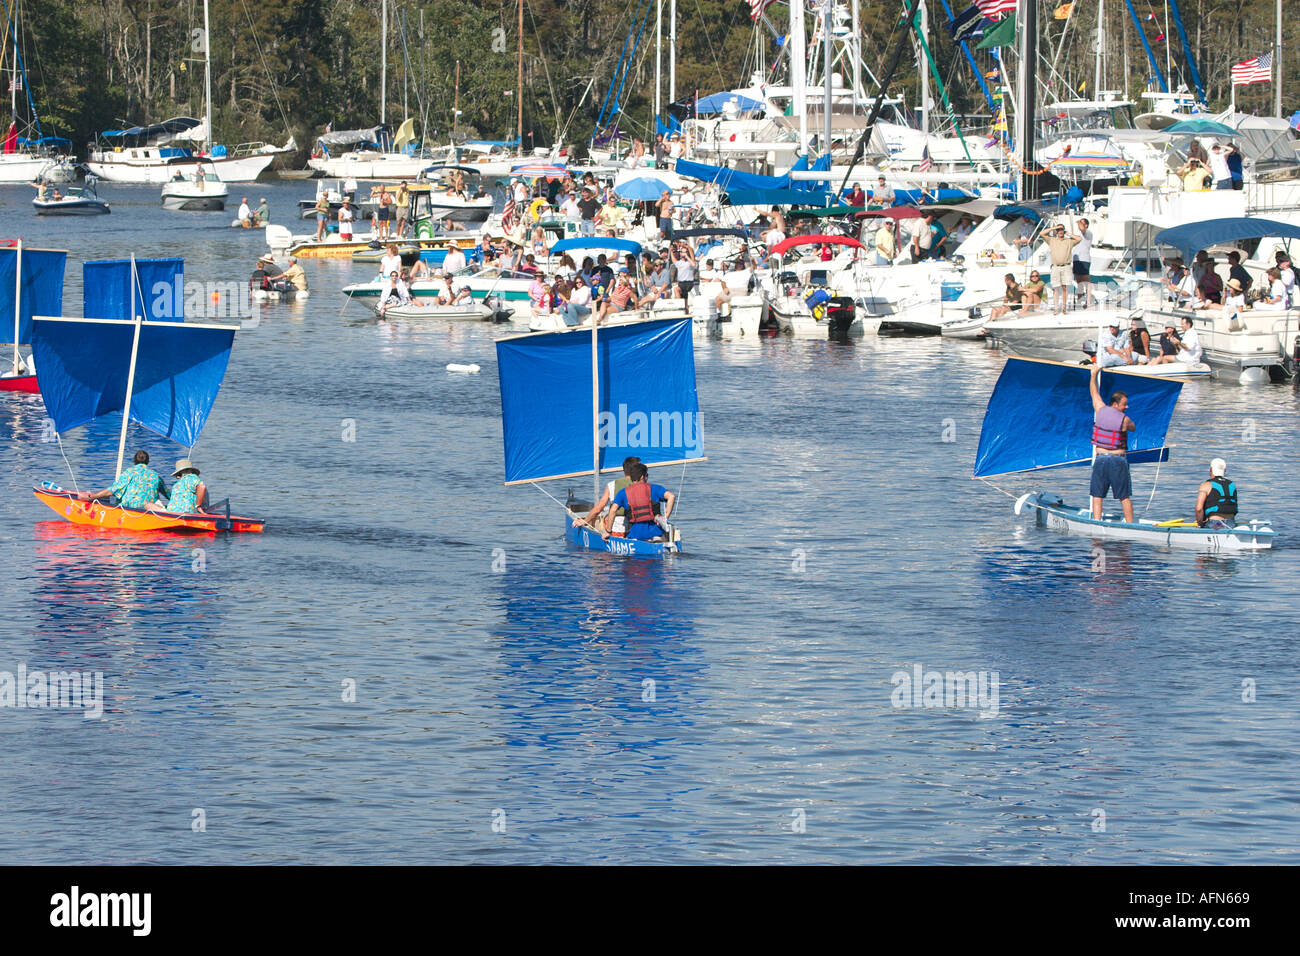 Participants In The Madisonville Wooden Boat Festival Race In Stock